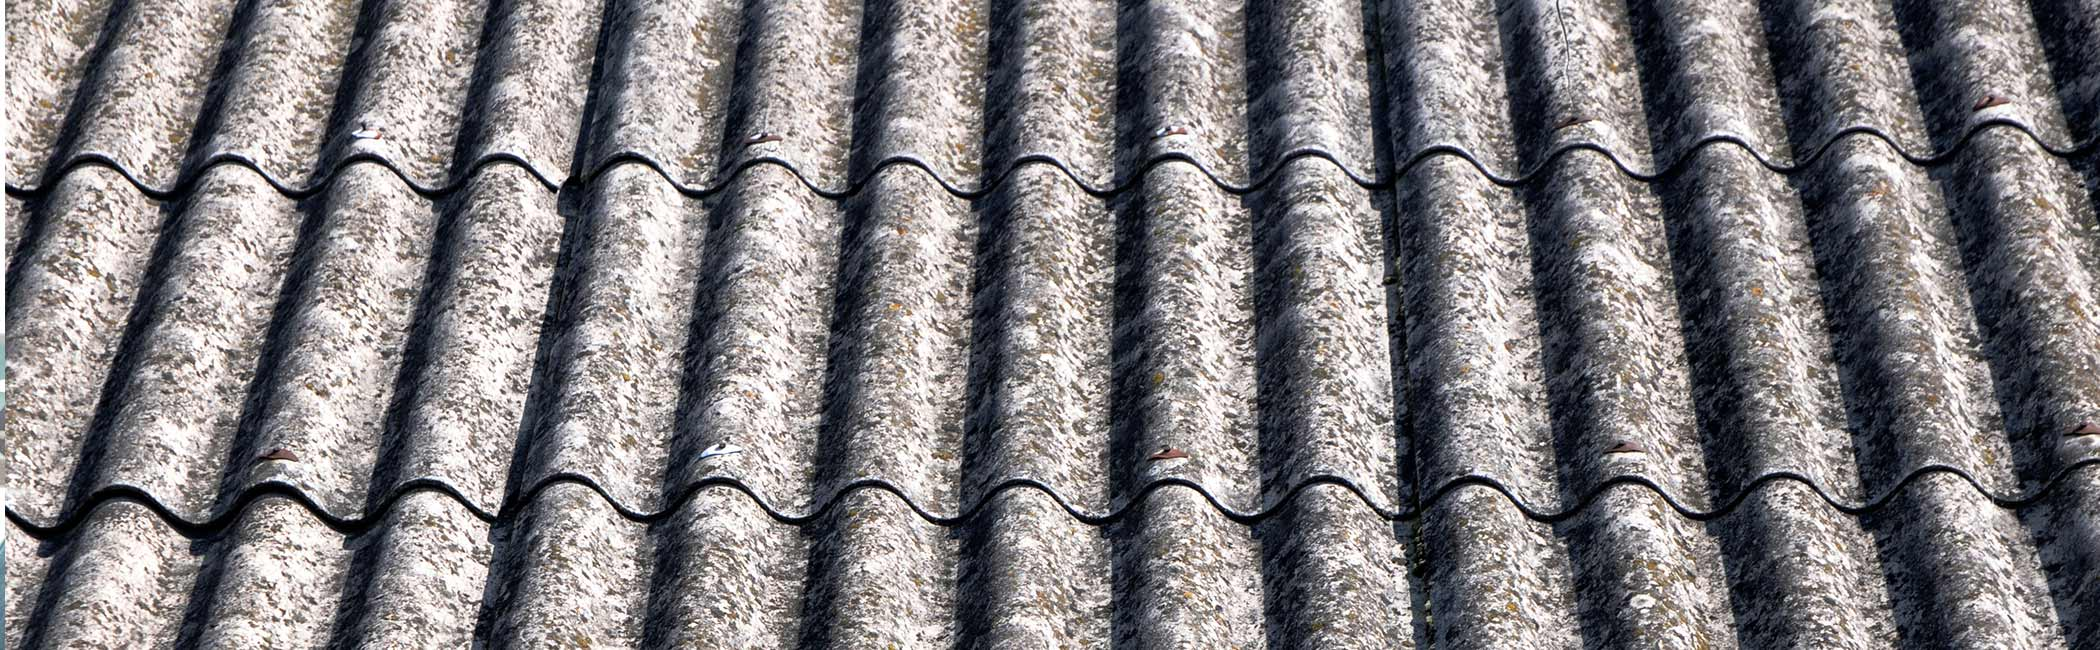 Asbestos Exposure: What to Do After Recent Exposure